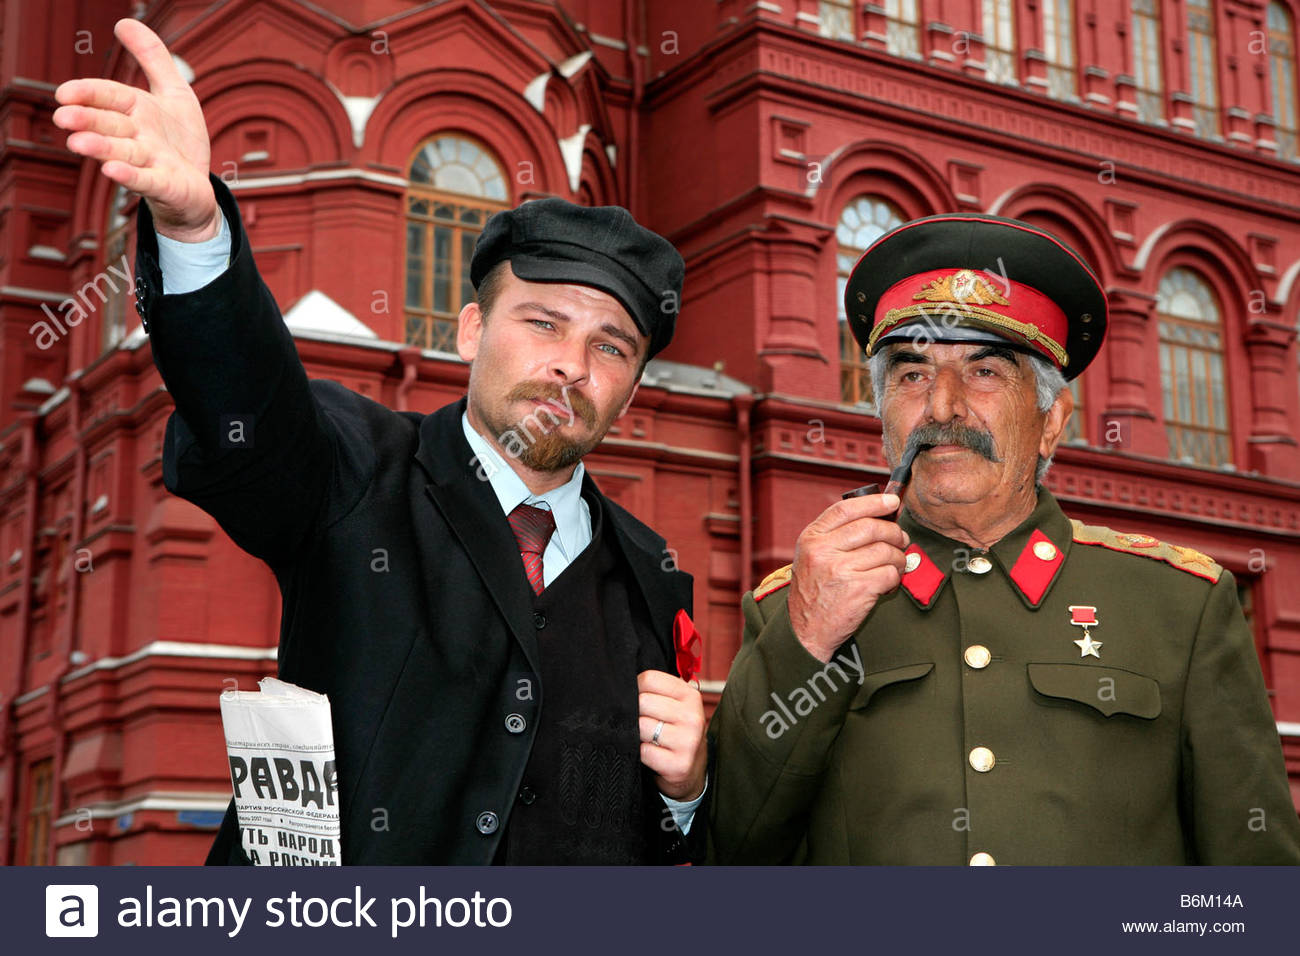 V.I. Lenin Museum Moscow, Vladimir Lenin (1870-1924) and Joseph Stalin (1878-1953) at Manege ...